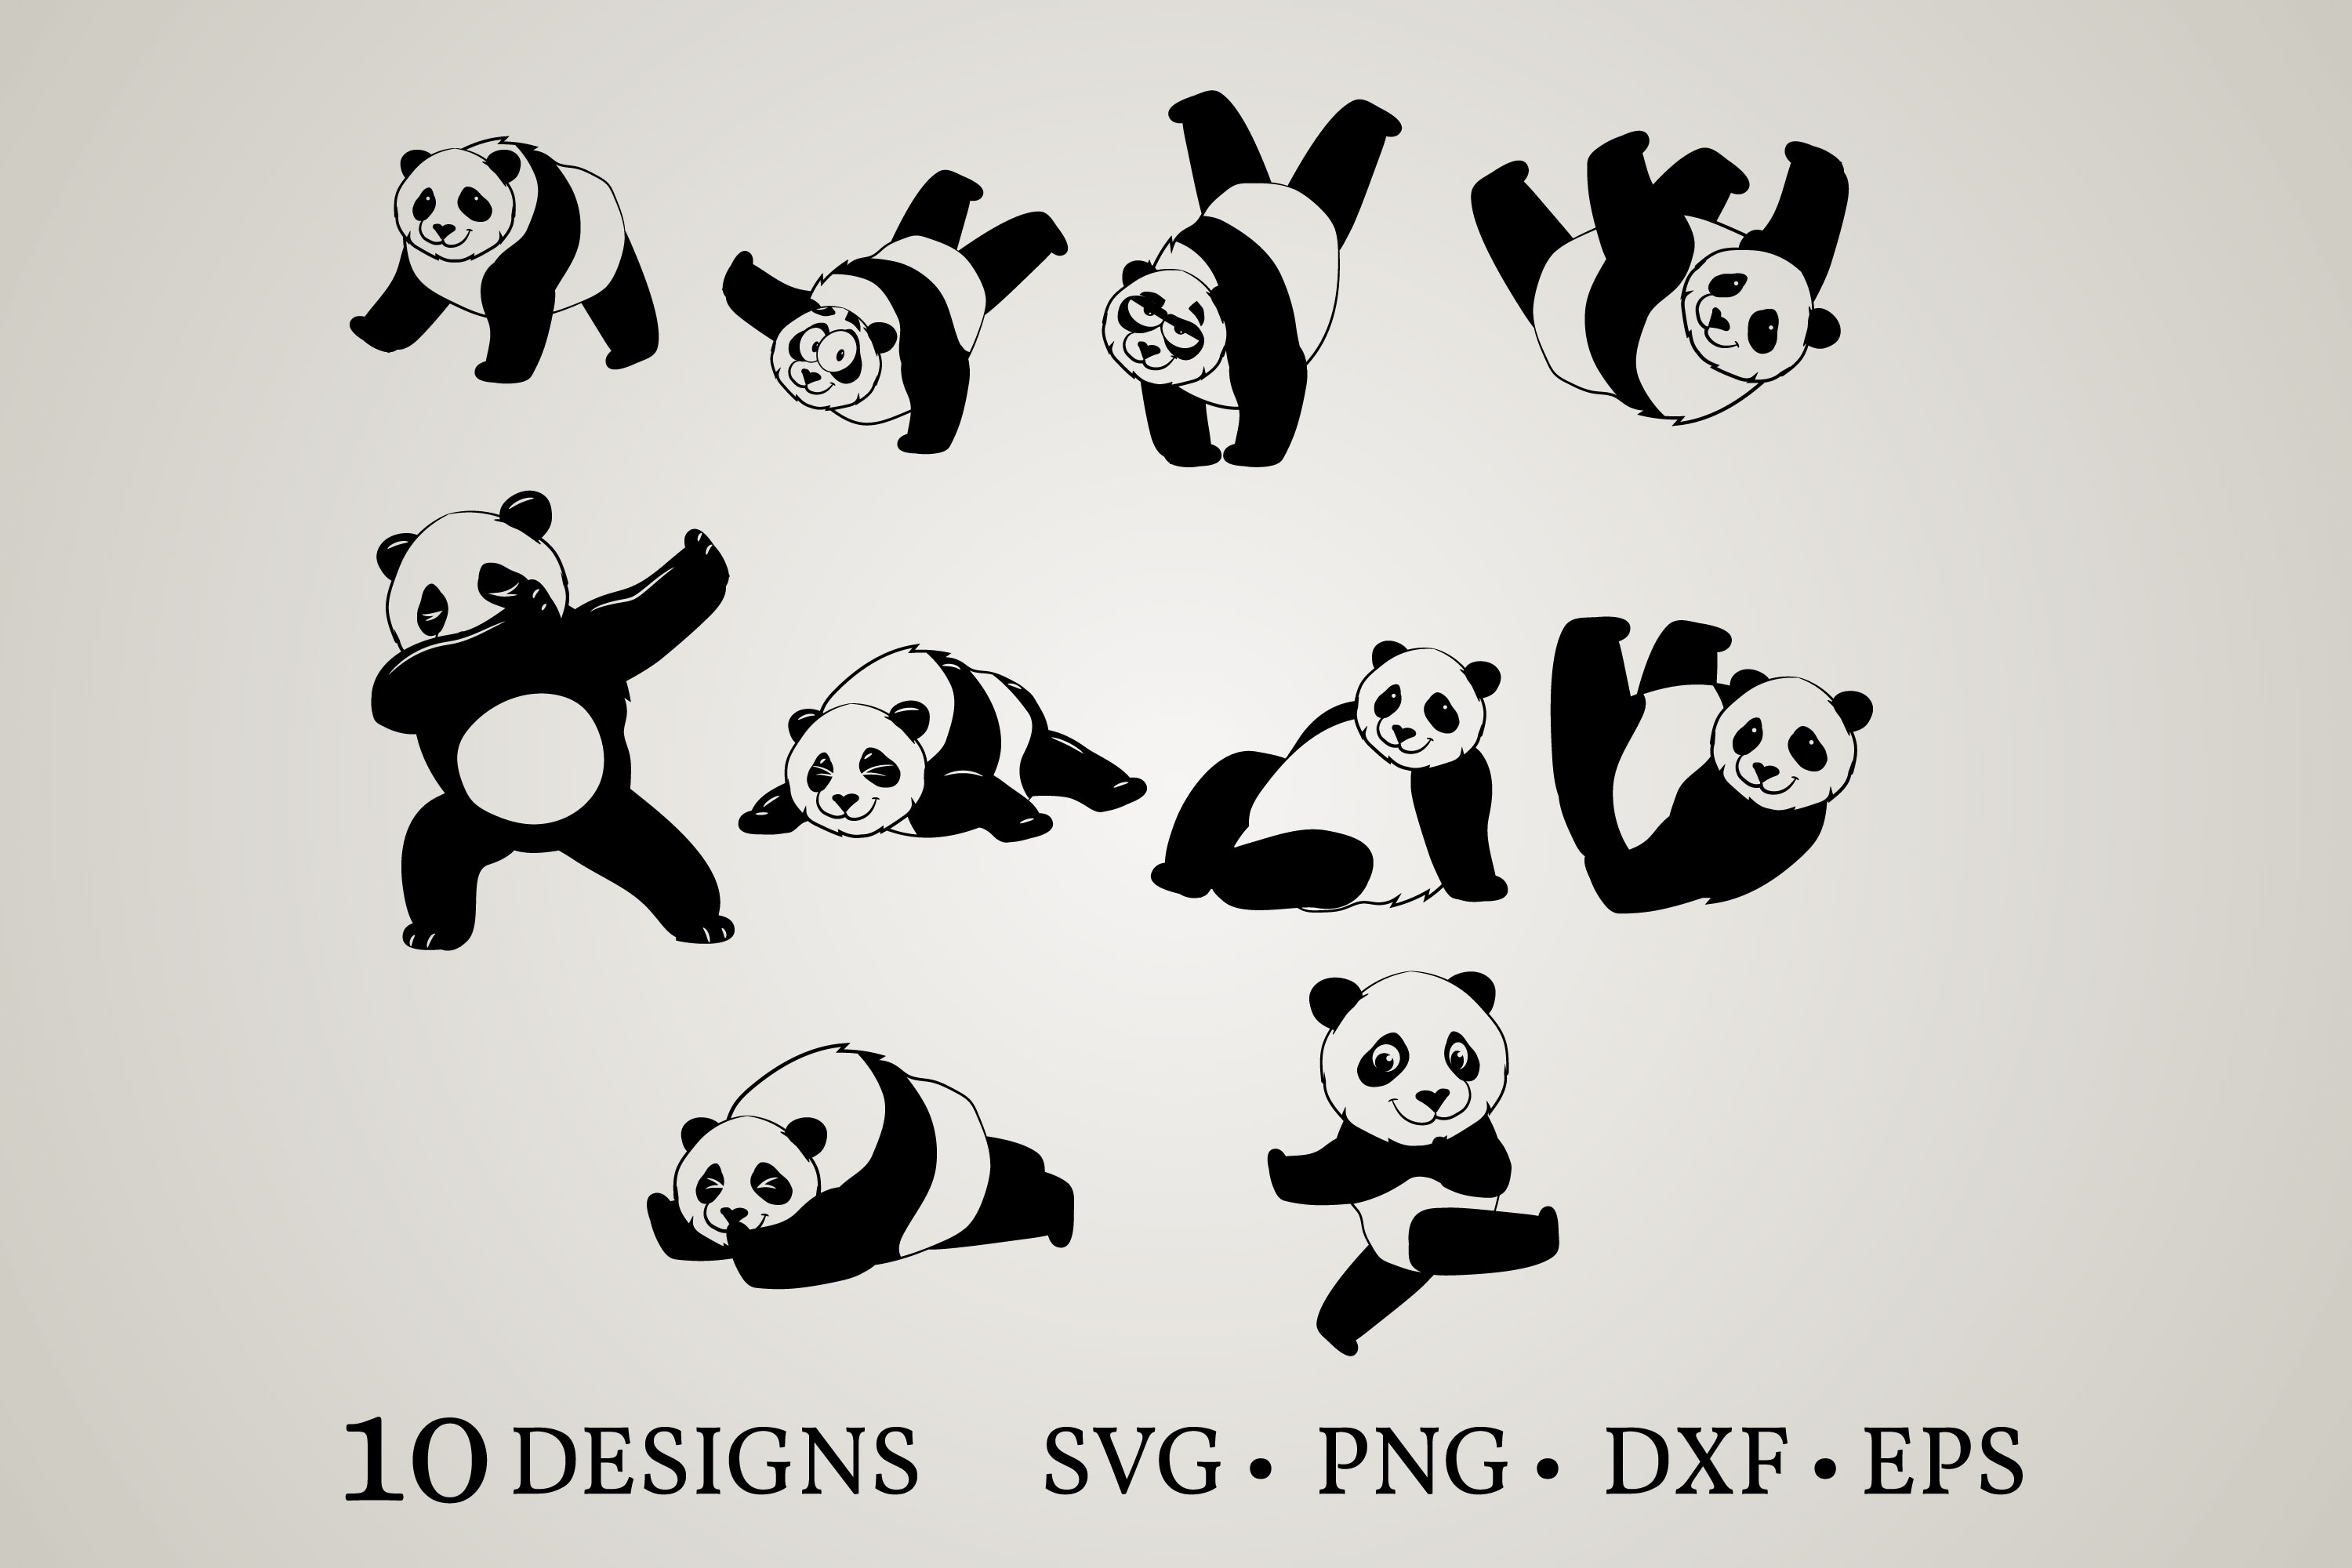 Download Free Panda Bundle Graphic By Euphoria Design Creative Fabrica for Cricut Explore, Silhouette and other cutting machines.